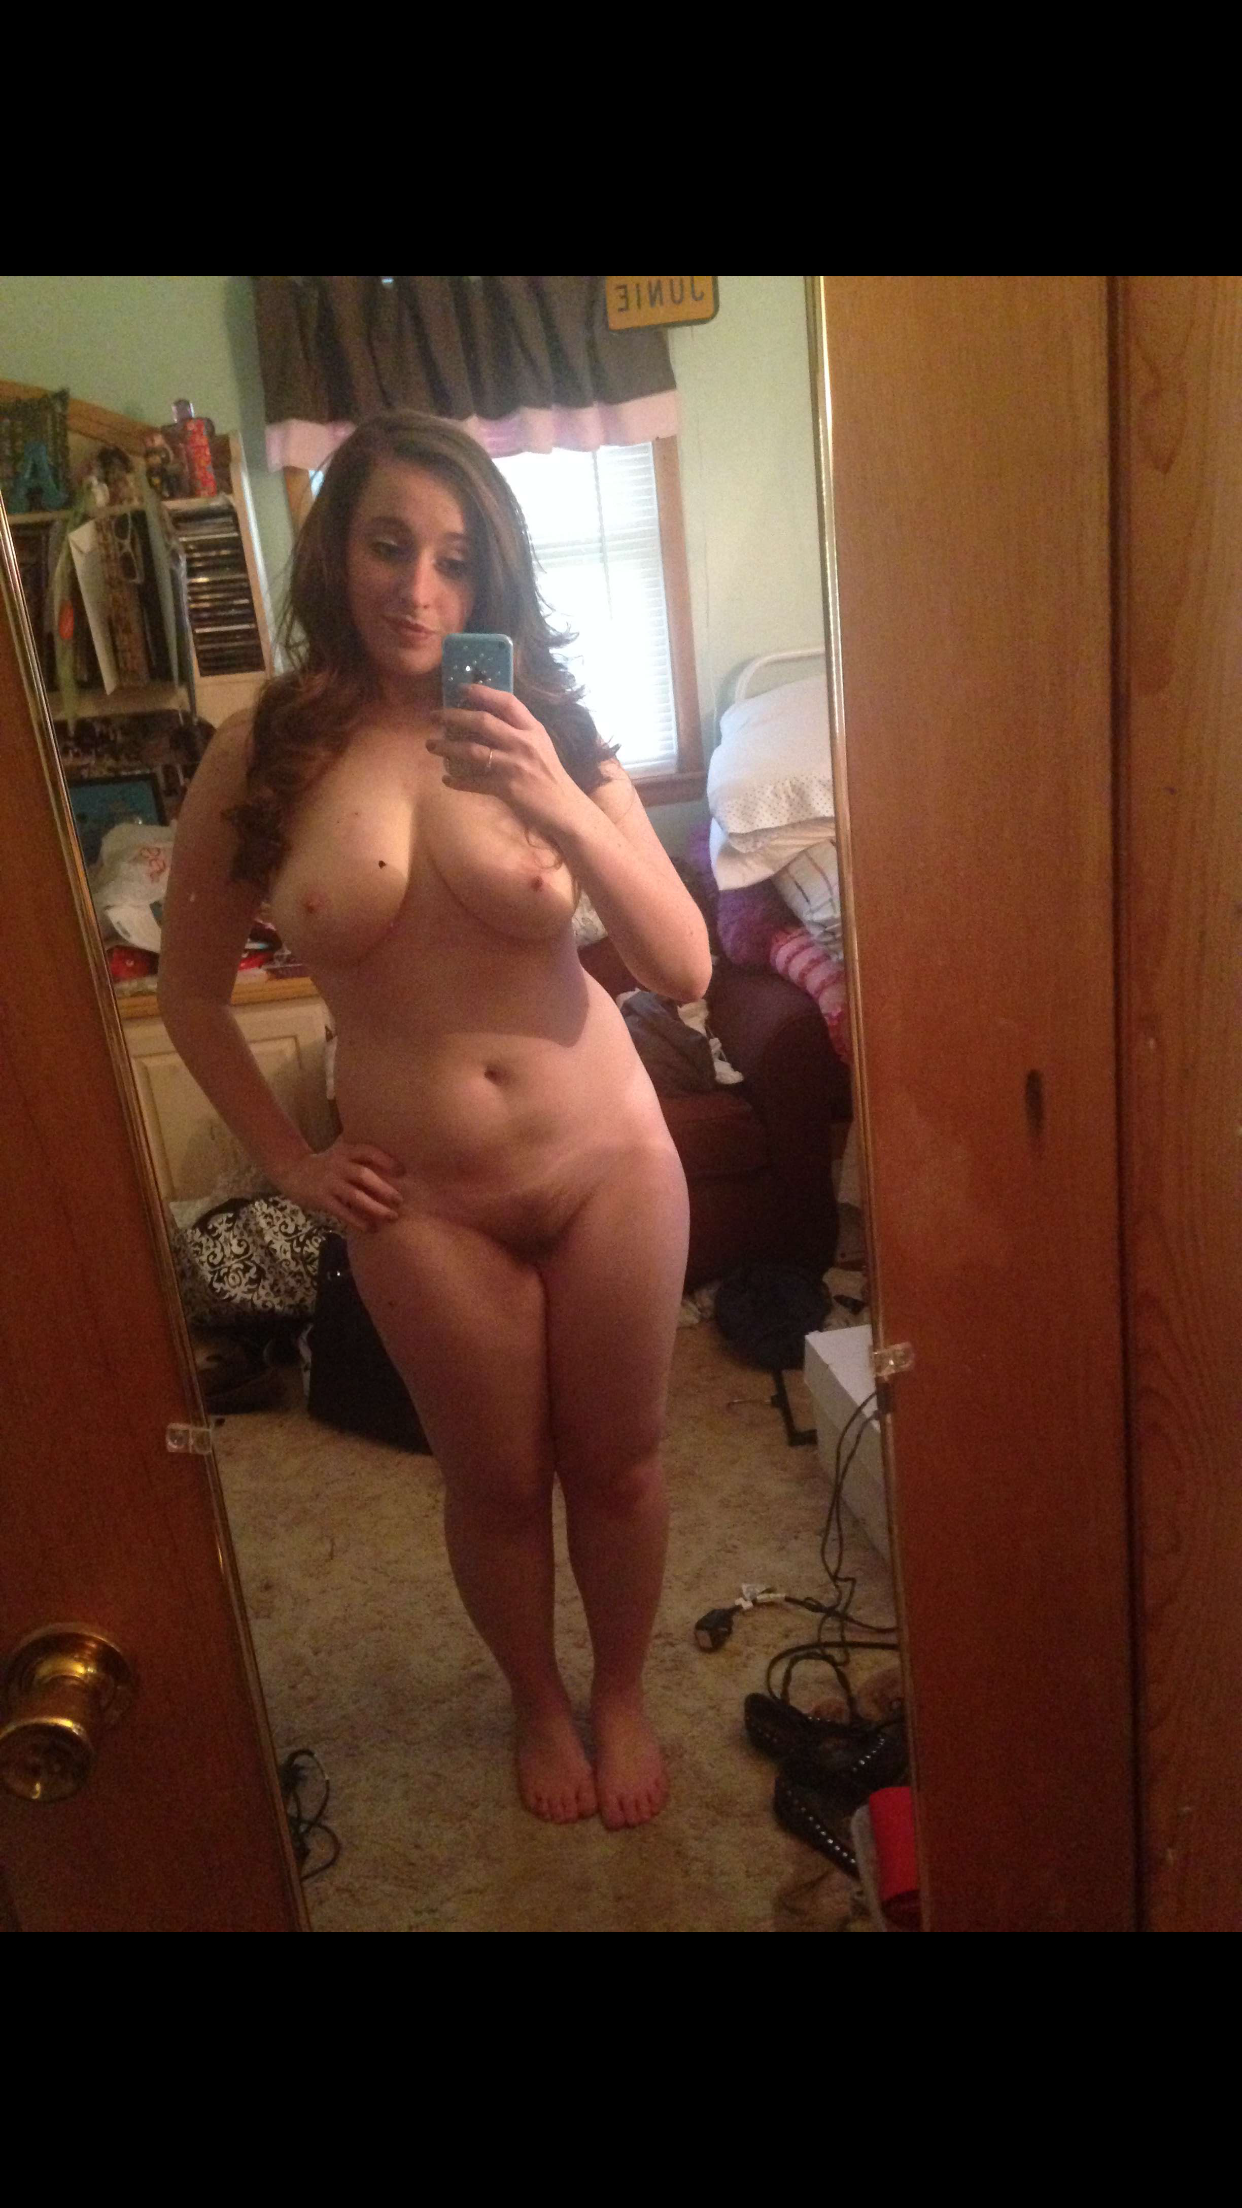 Teen with huge tits meets up with guy she met online 2